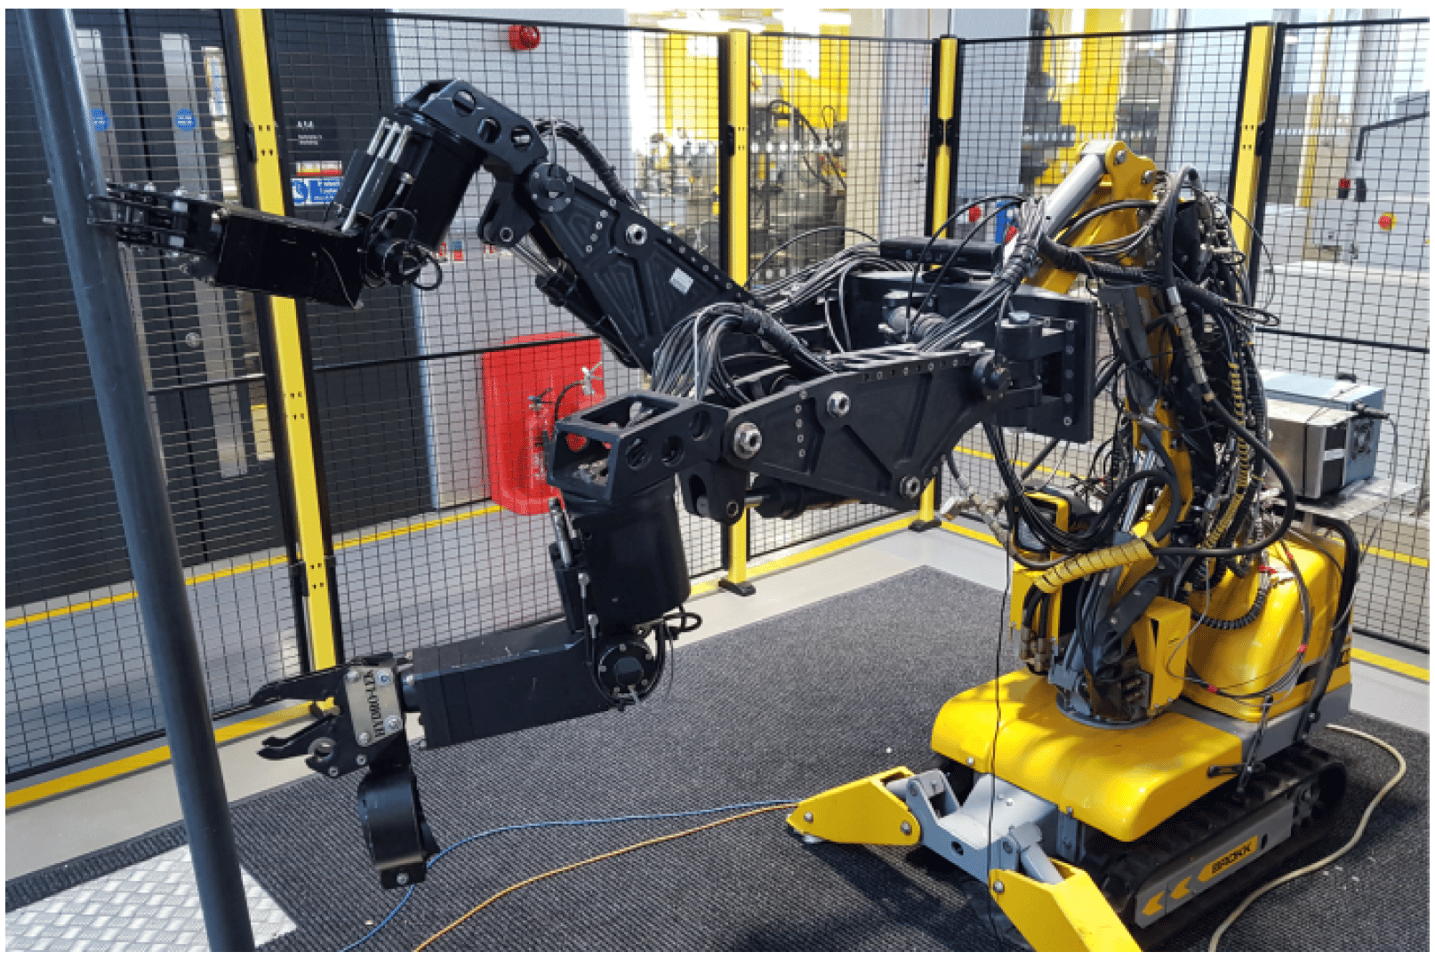 The mobile robot with manipulating arms grasping a pipe